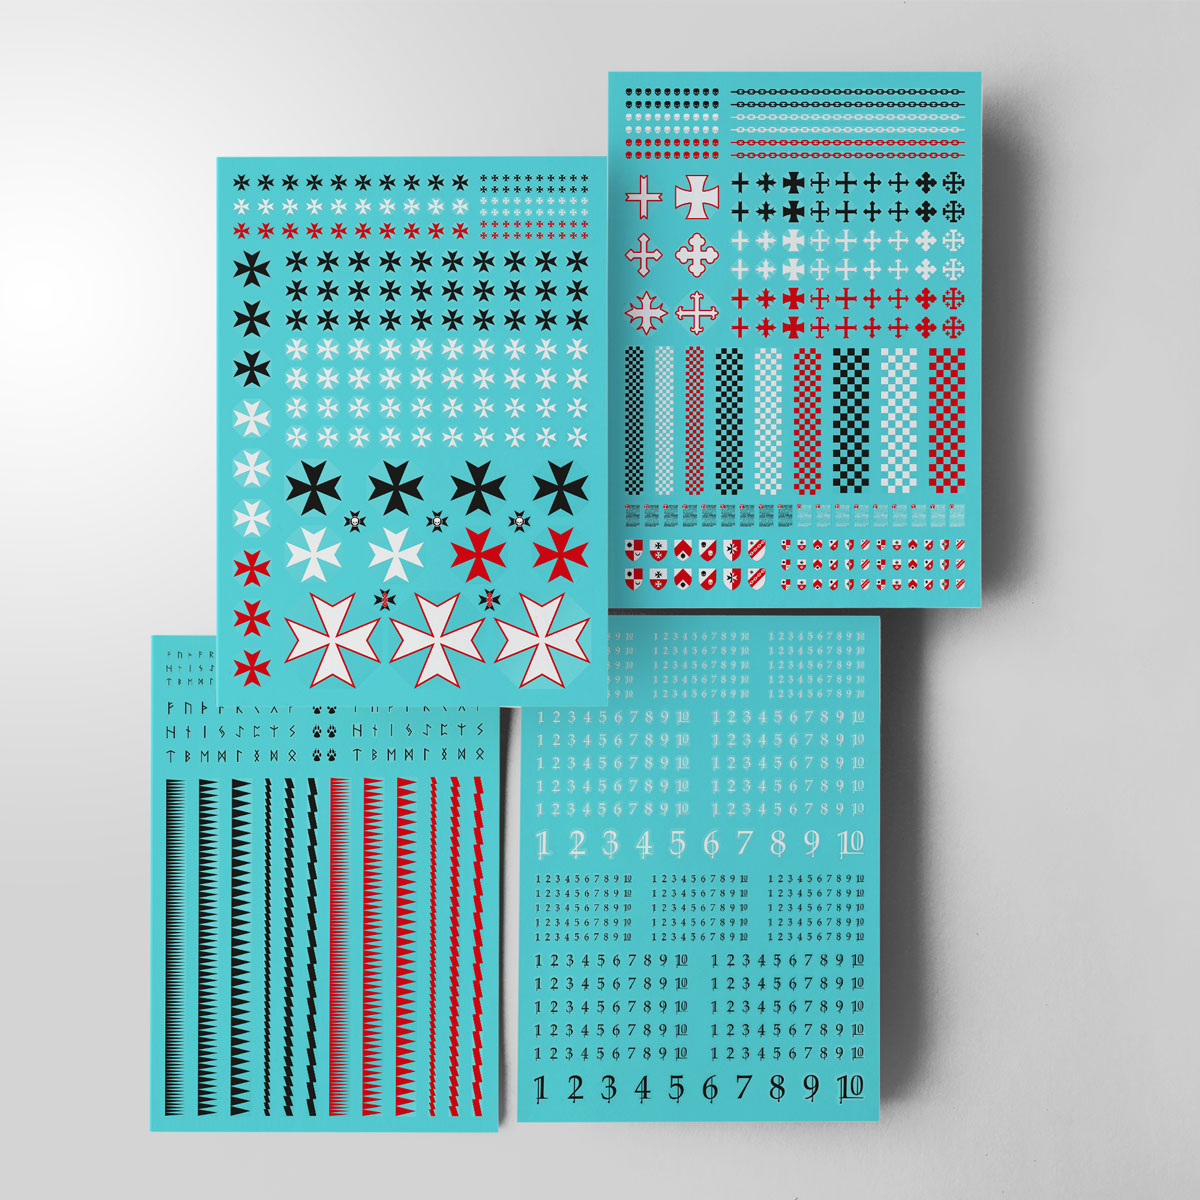 NEW! Screen printed transfer sheets